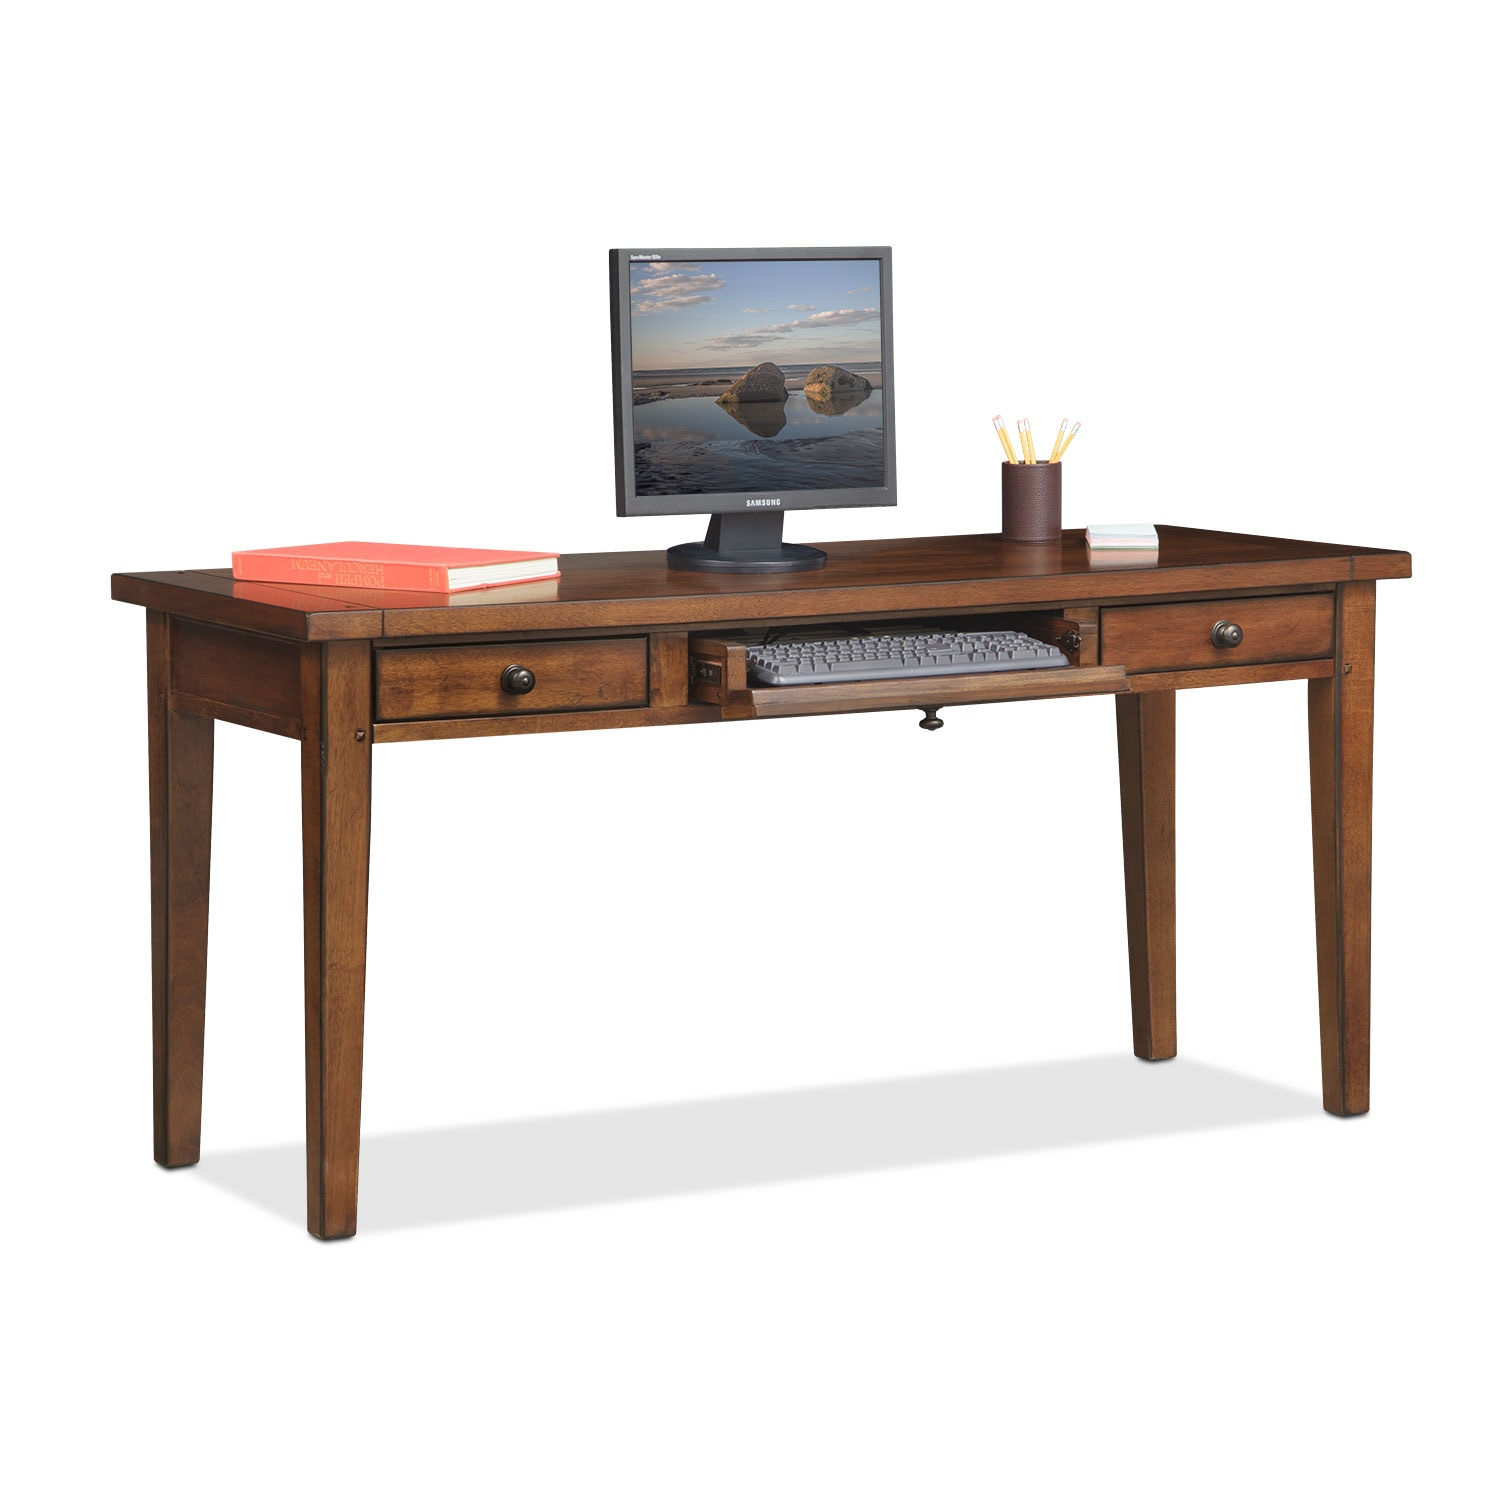 Morgan Desk - Brown